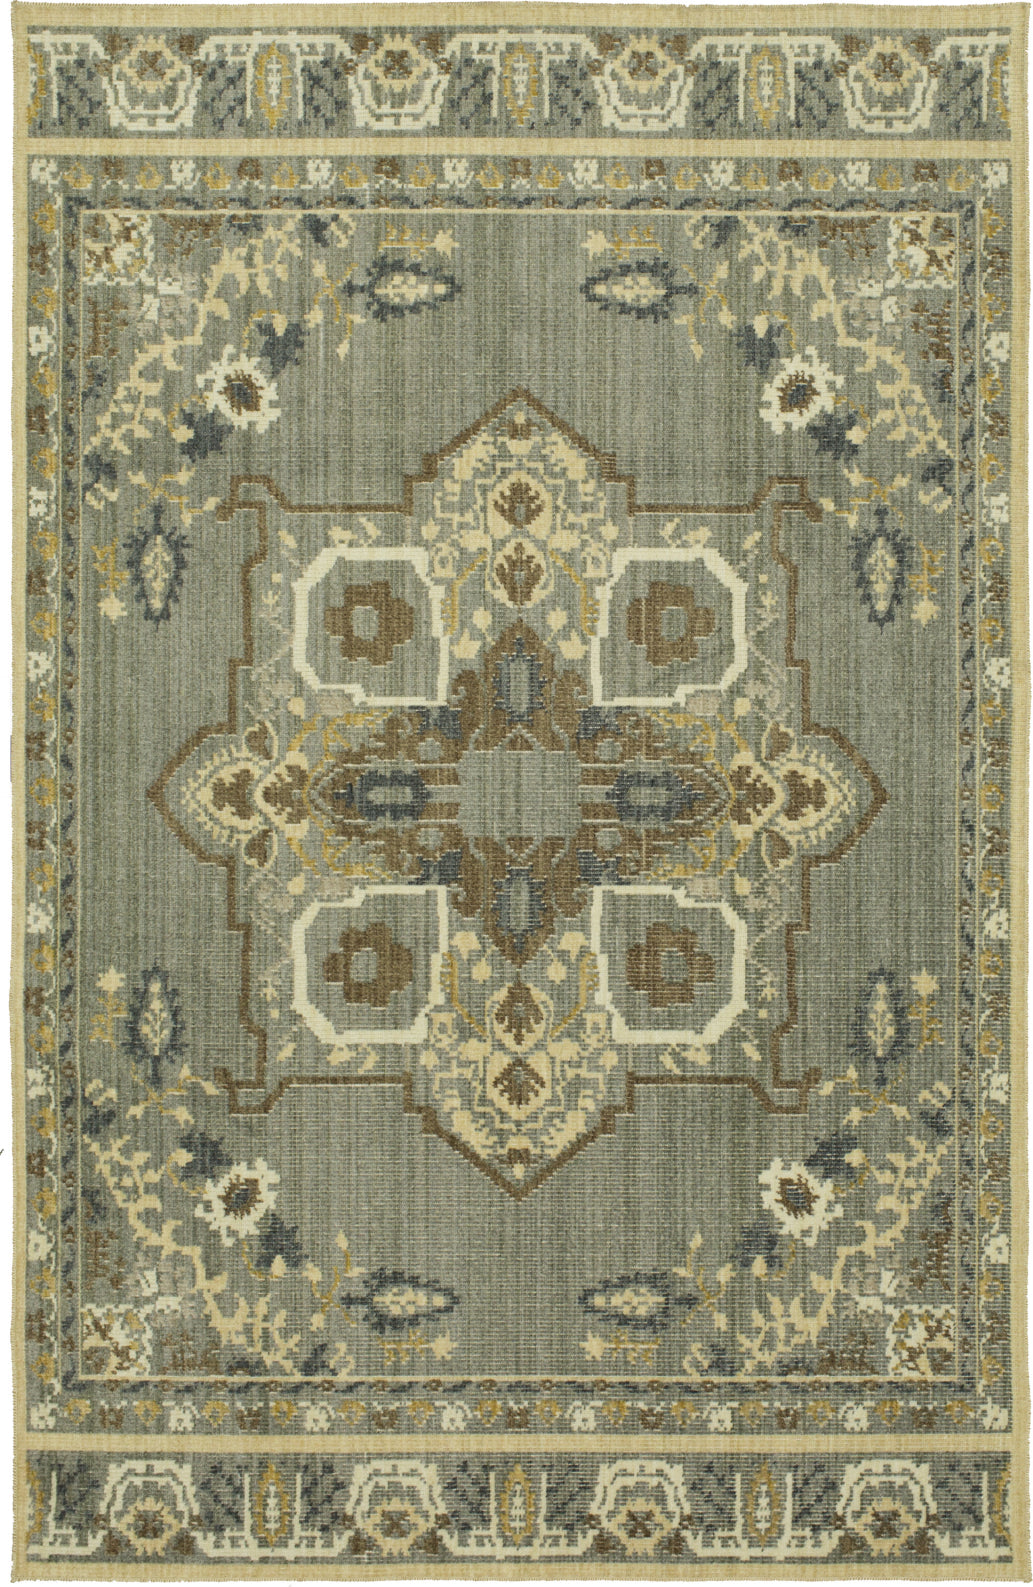 Karastan Vintage Tapis Left Bank Grey Multi Area Rug by Patina Vie main image